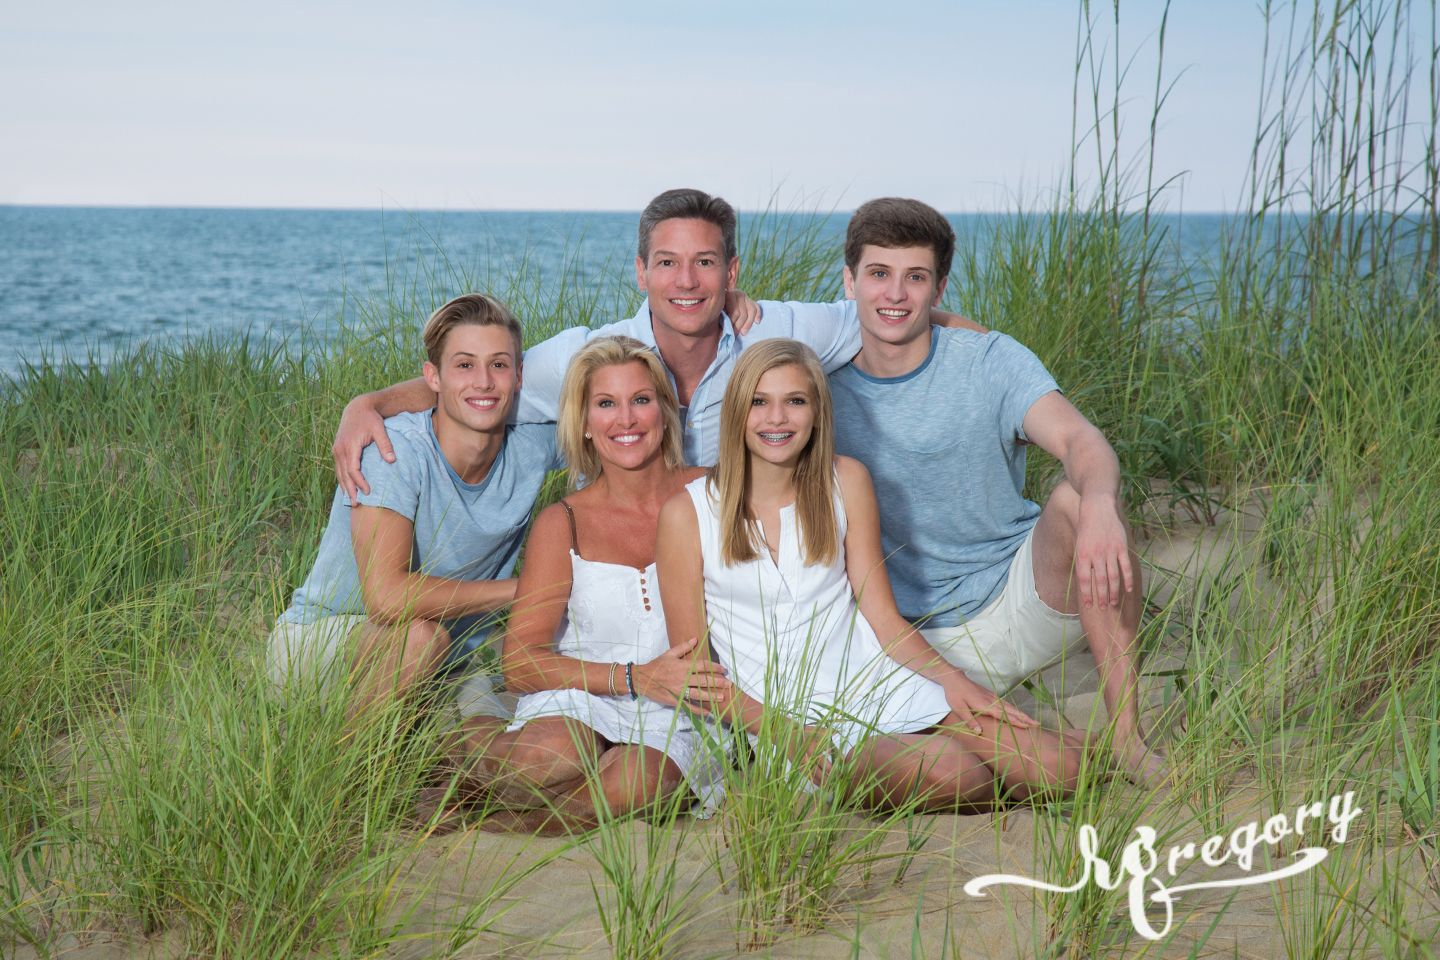 Mayer family portrait on beach in grass va